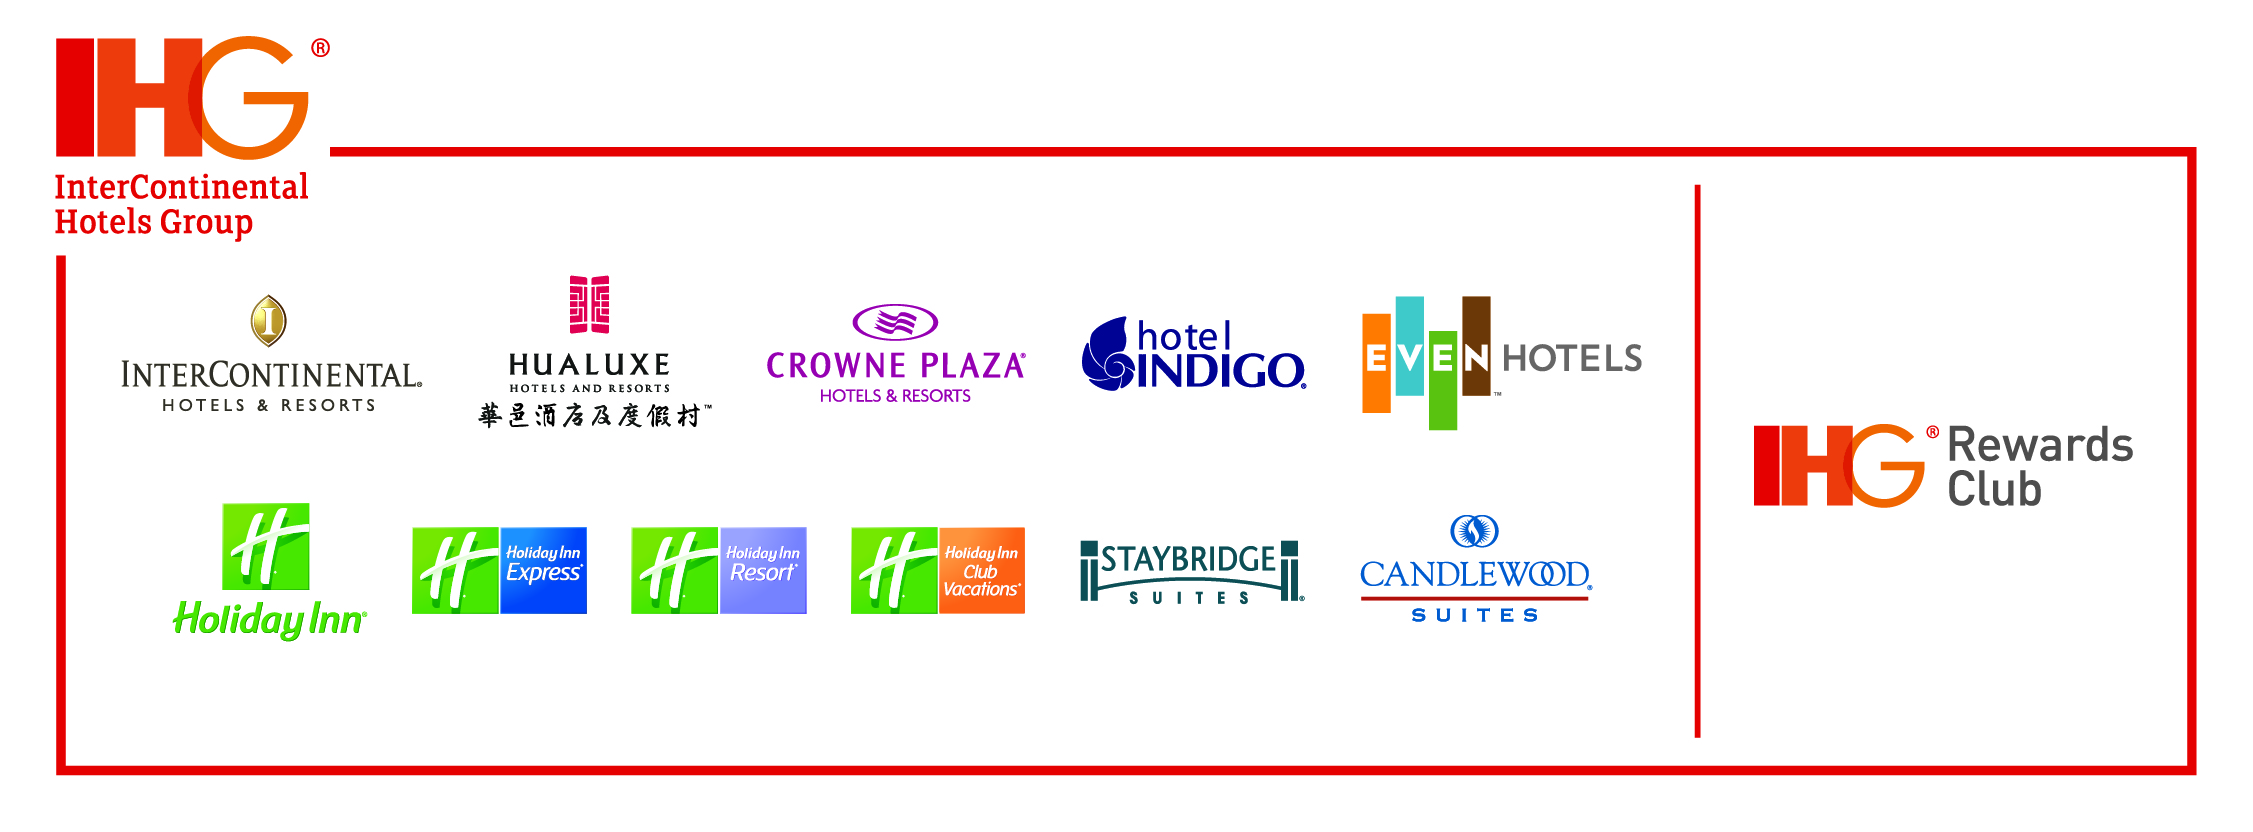 IHG Rewards Club Brands